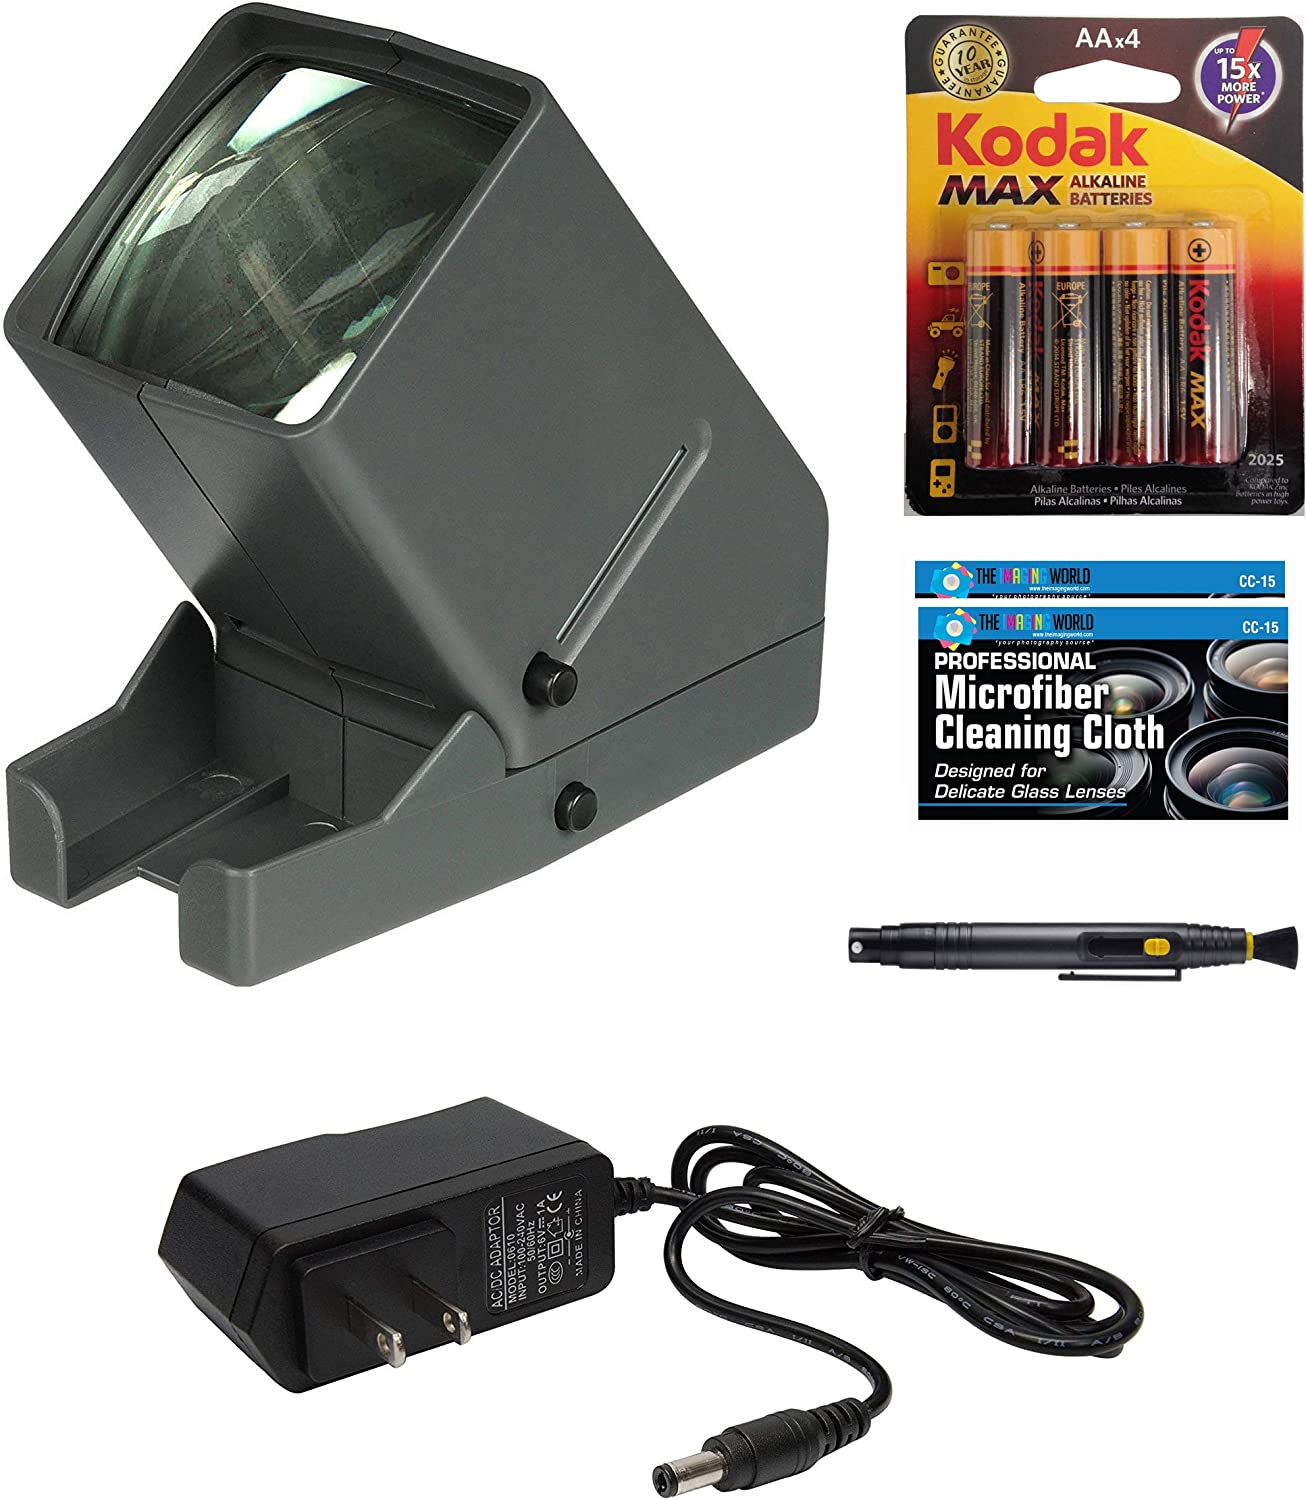 Medalight 35mm Desk Top Portable LED Negative and Slide Viewer + AA Batteries + AC Adapter + Microfiber Cleaning Cloth